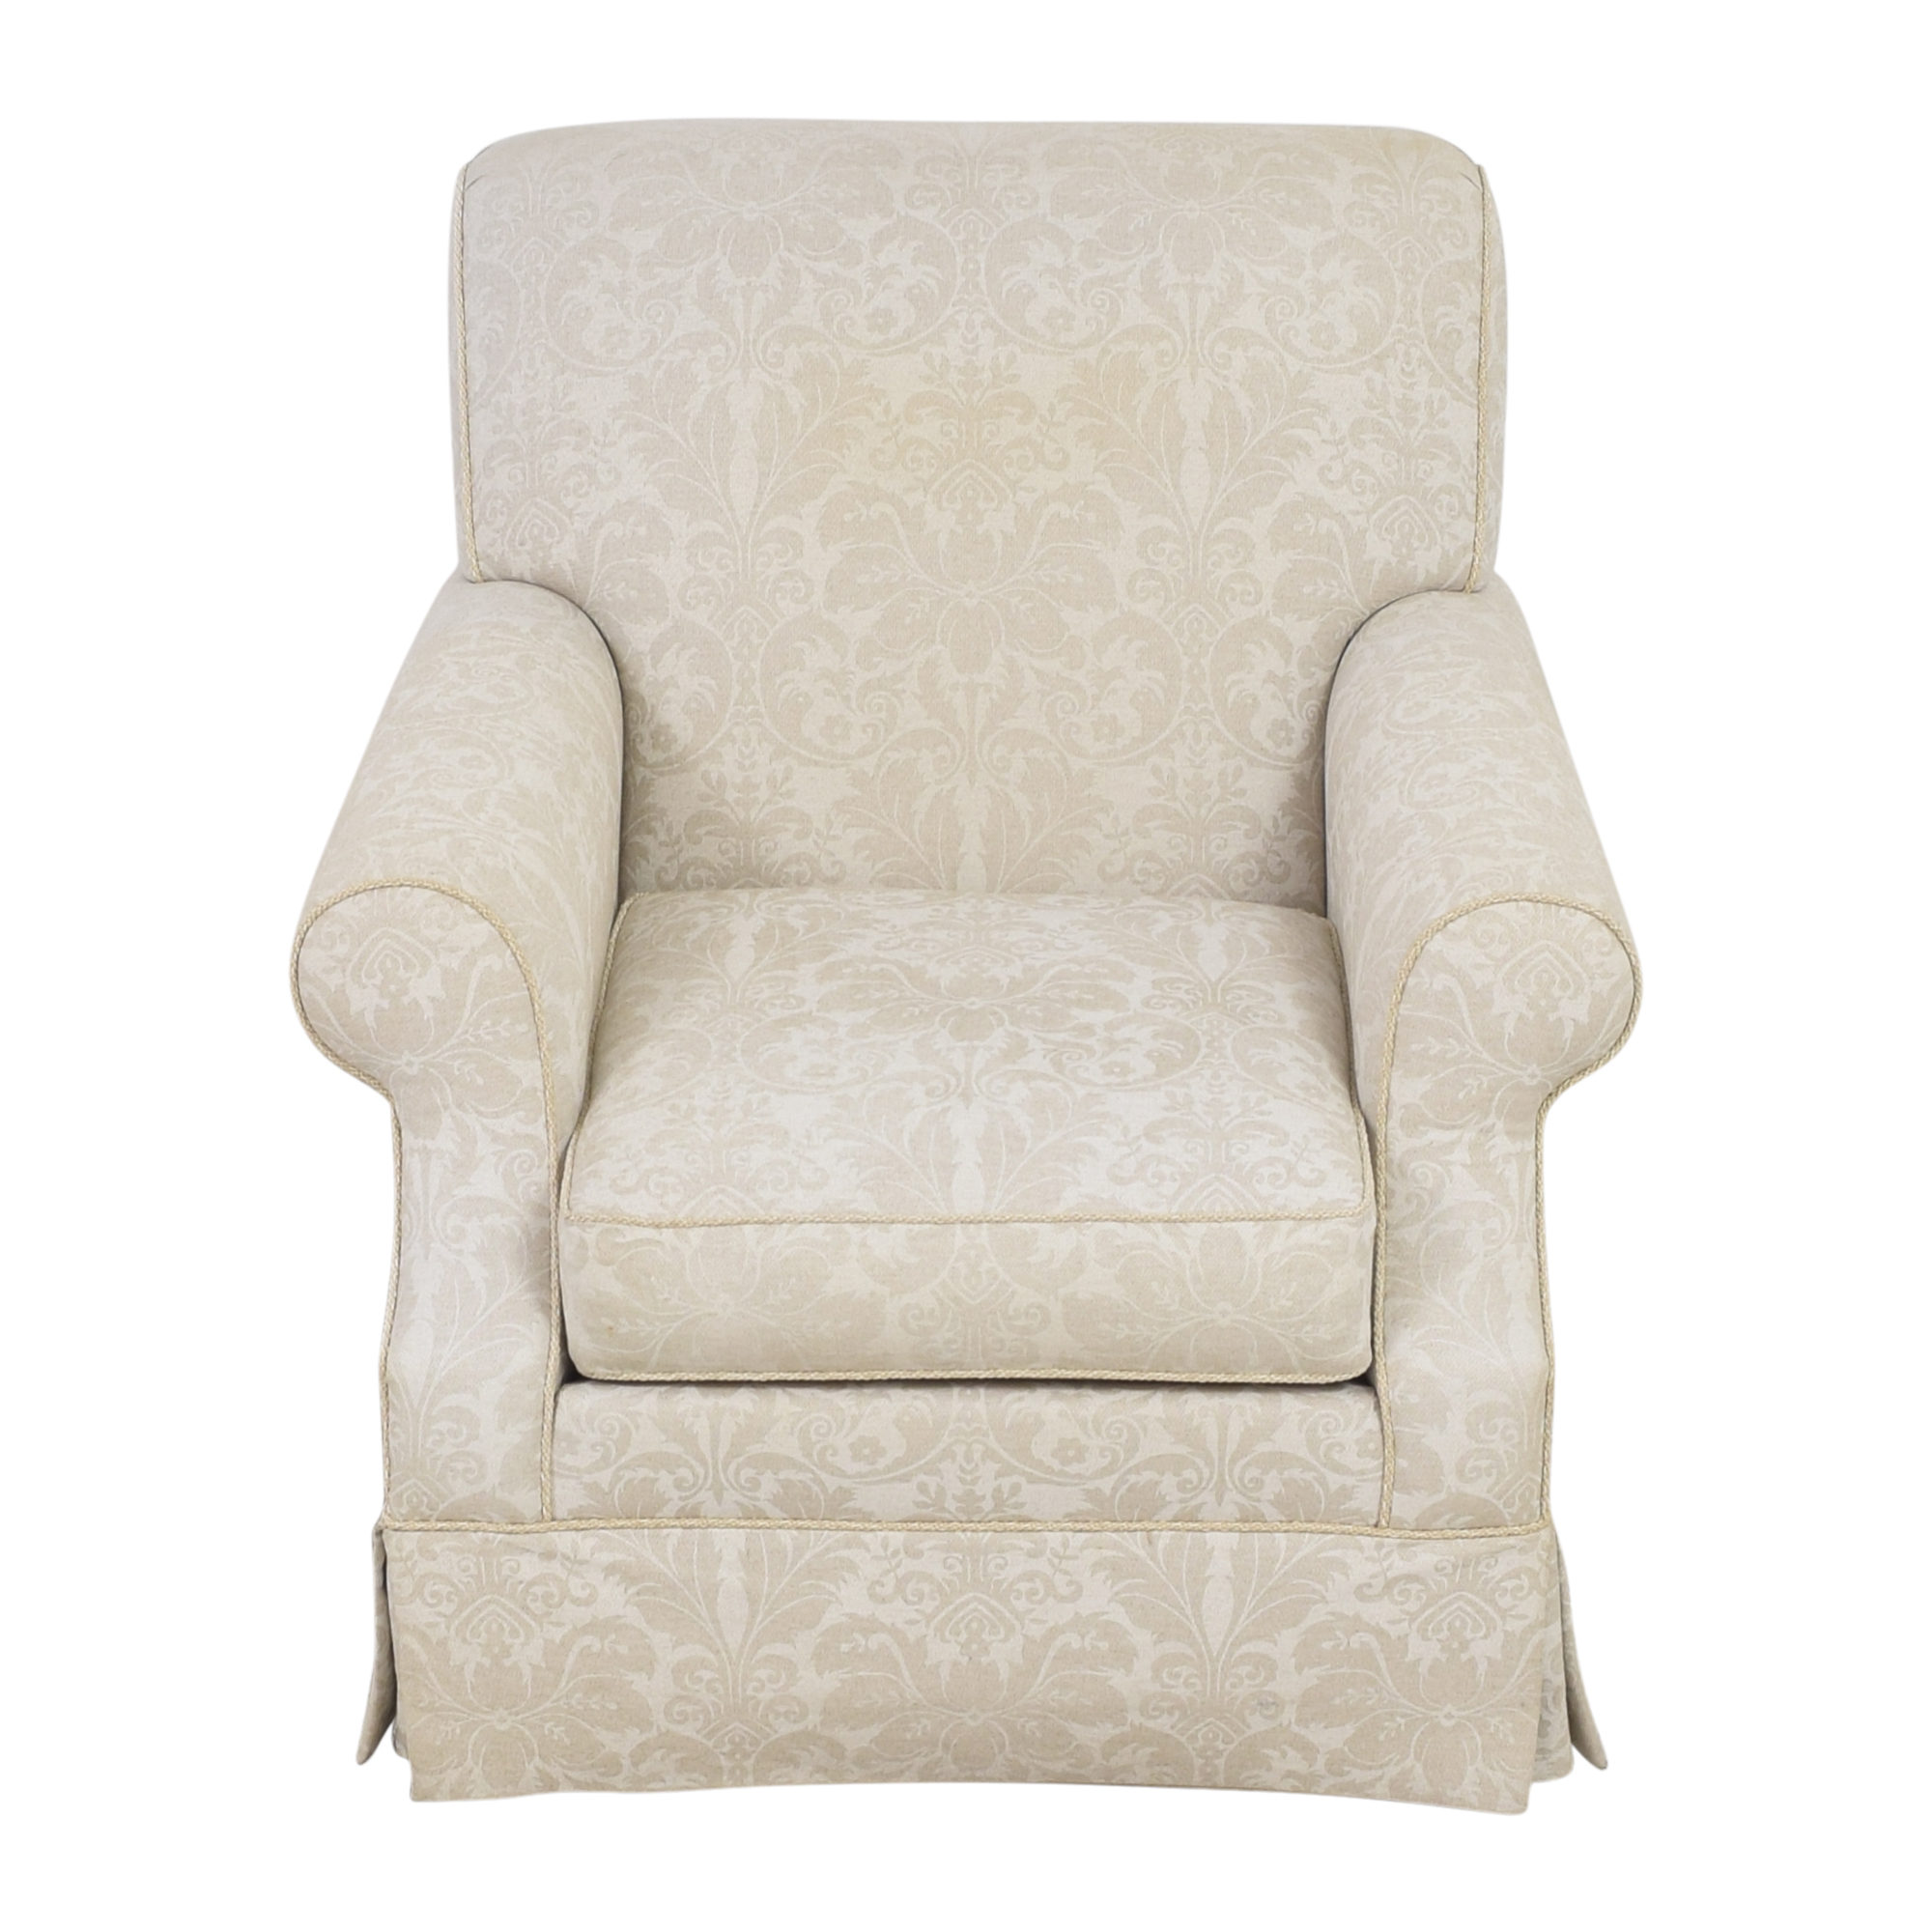 Ethan Allen Ethan Allen Damask Accent Chair used